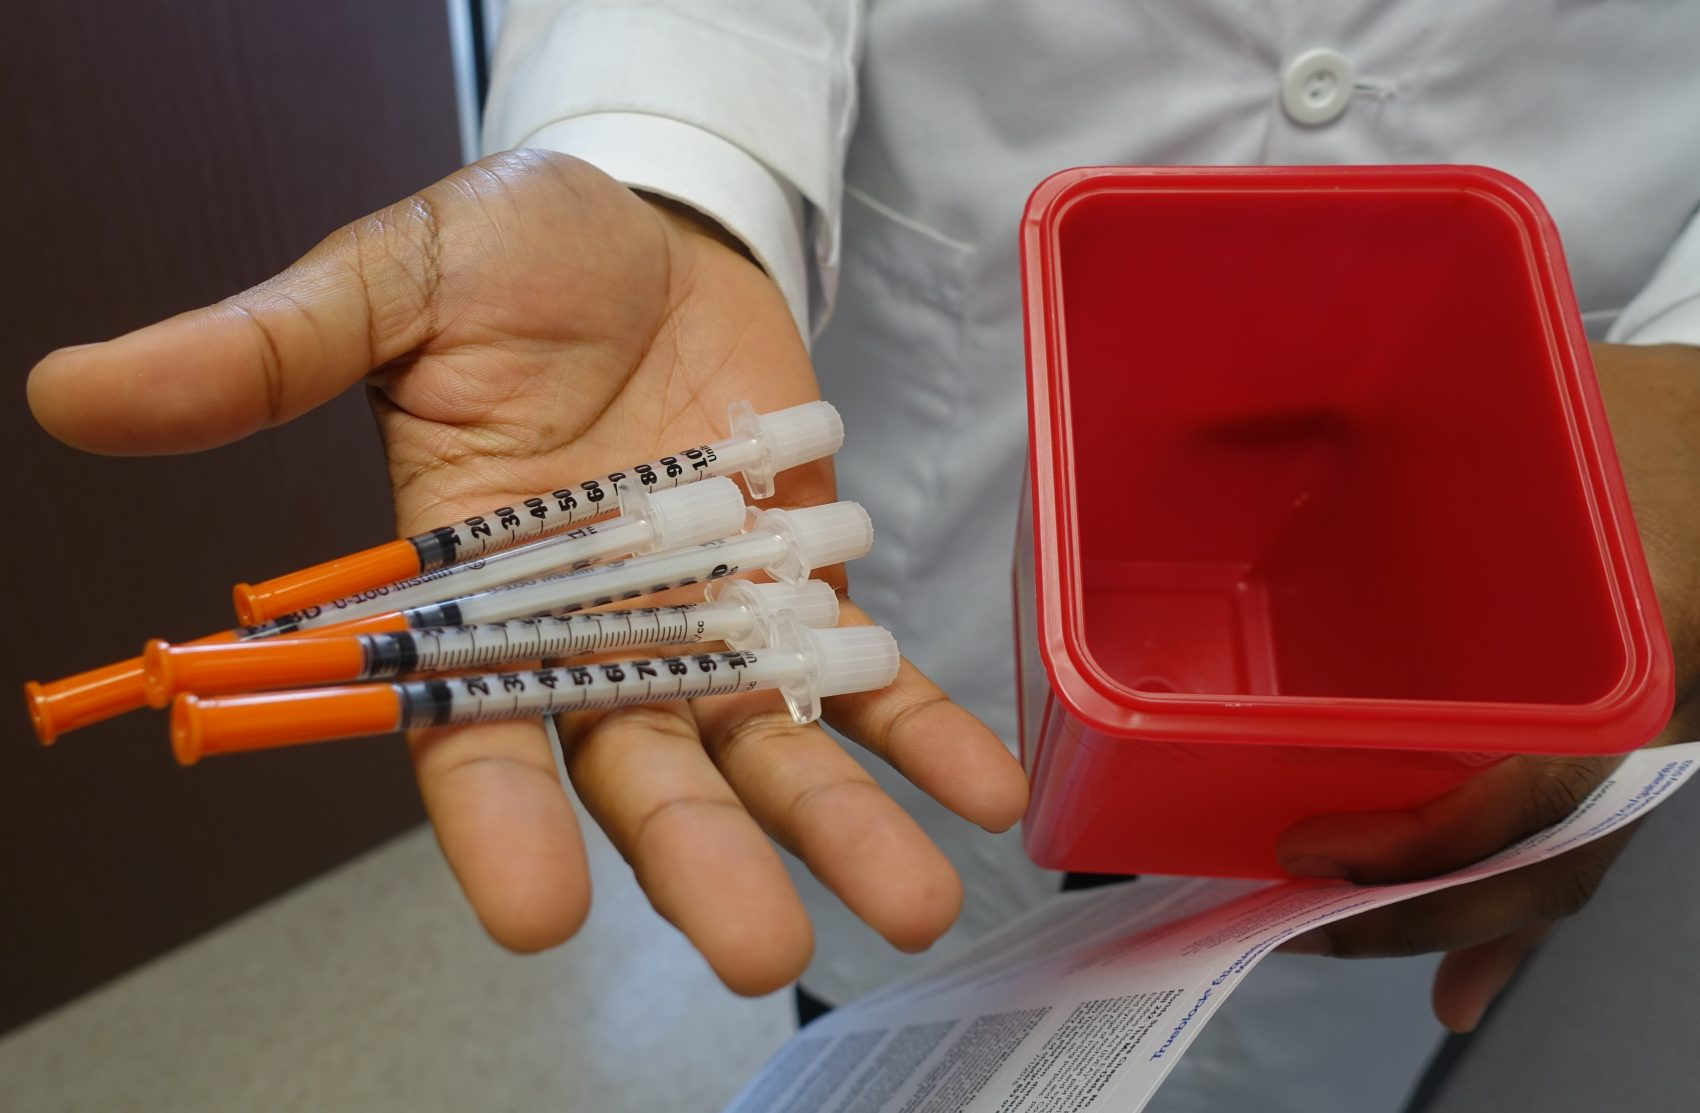 A doctor at the University of Miami holds needles on Nov. 30, 2016, that will be given away to people with drug addictions at a new syringe exchange program. (Kerry Sheridan/AFP/Getty Images)